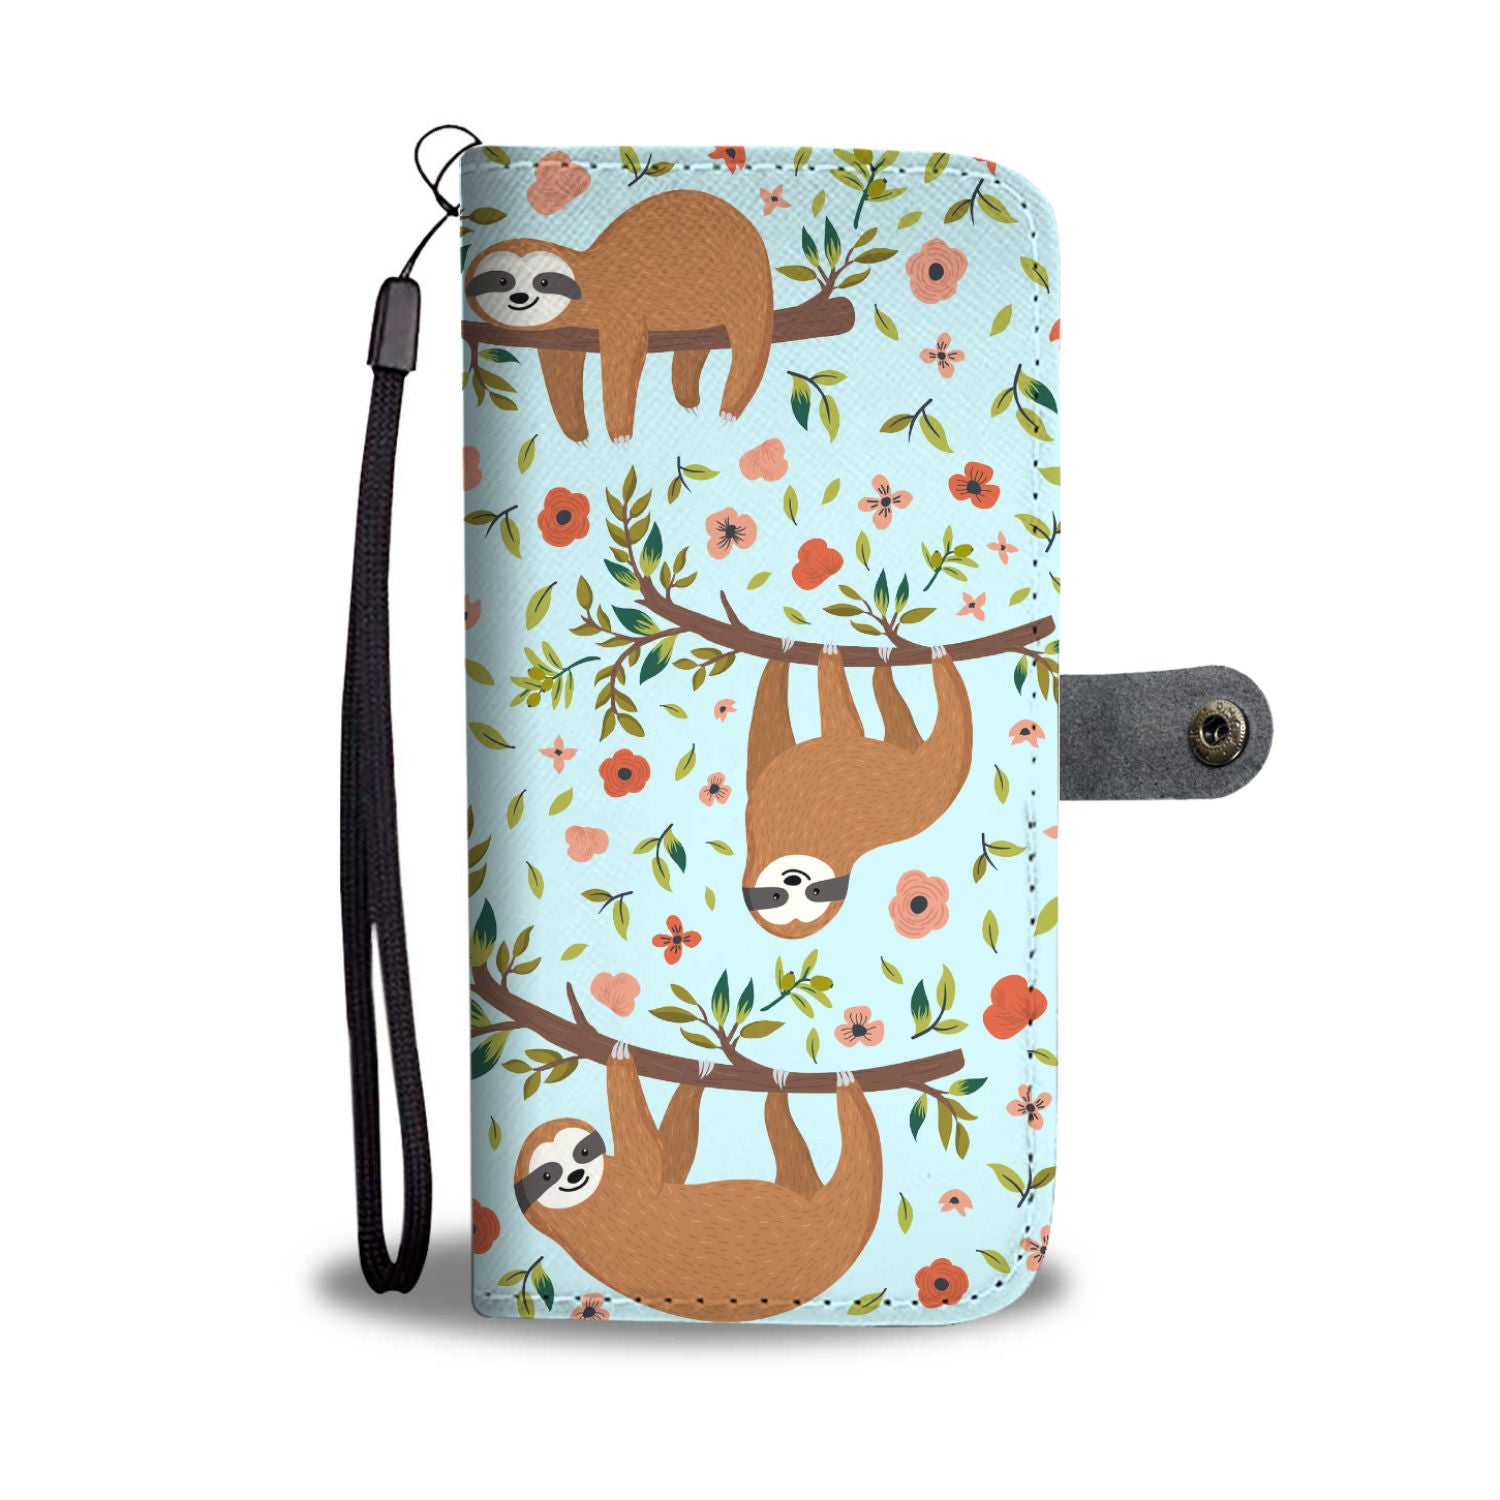 huge discount c2082 76a8c Floral Sloth Wallet Phone Cover – Groove Bags